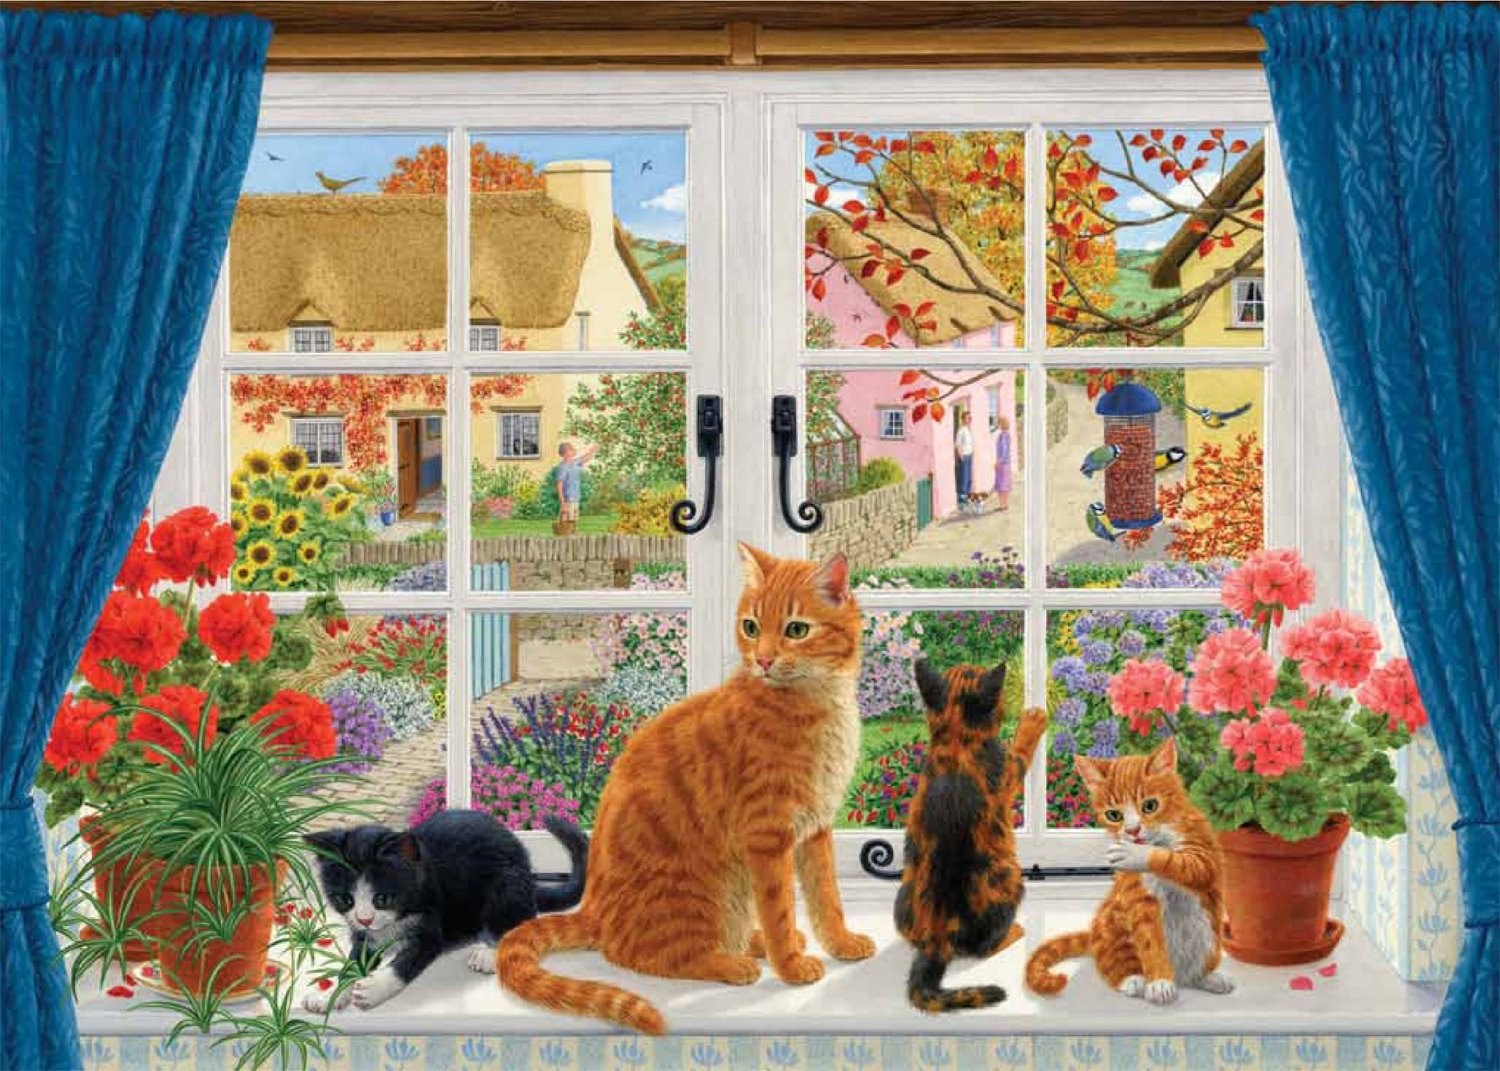 falcon-sarah-adams-through-the-cottage-window-500-teile-puzzle-jumbo-11064